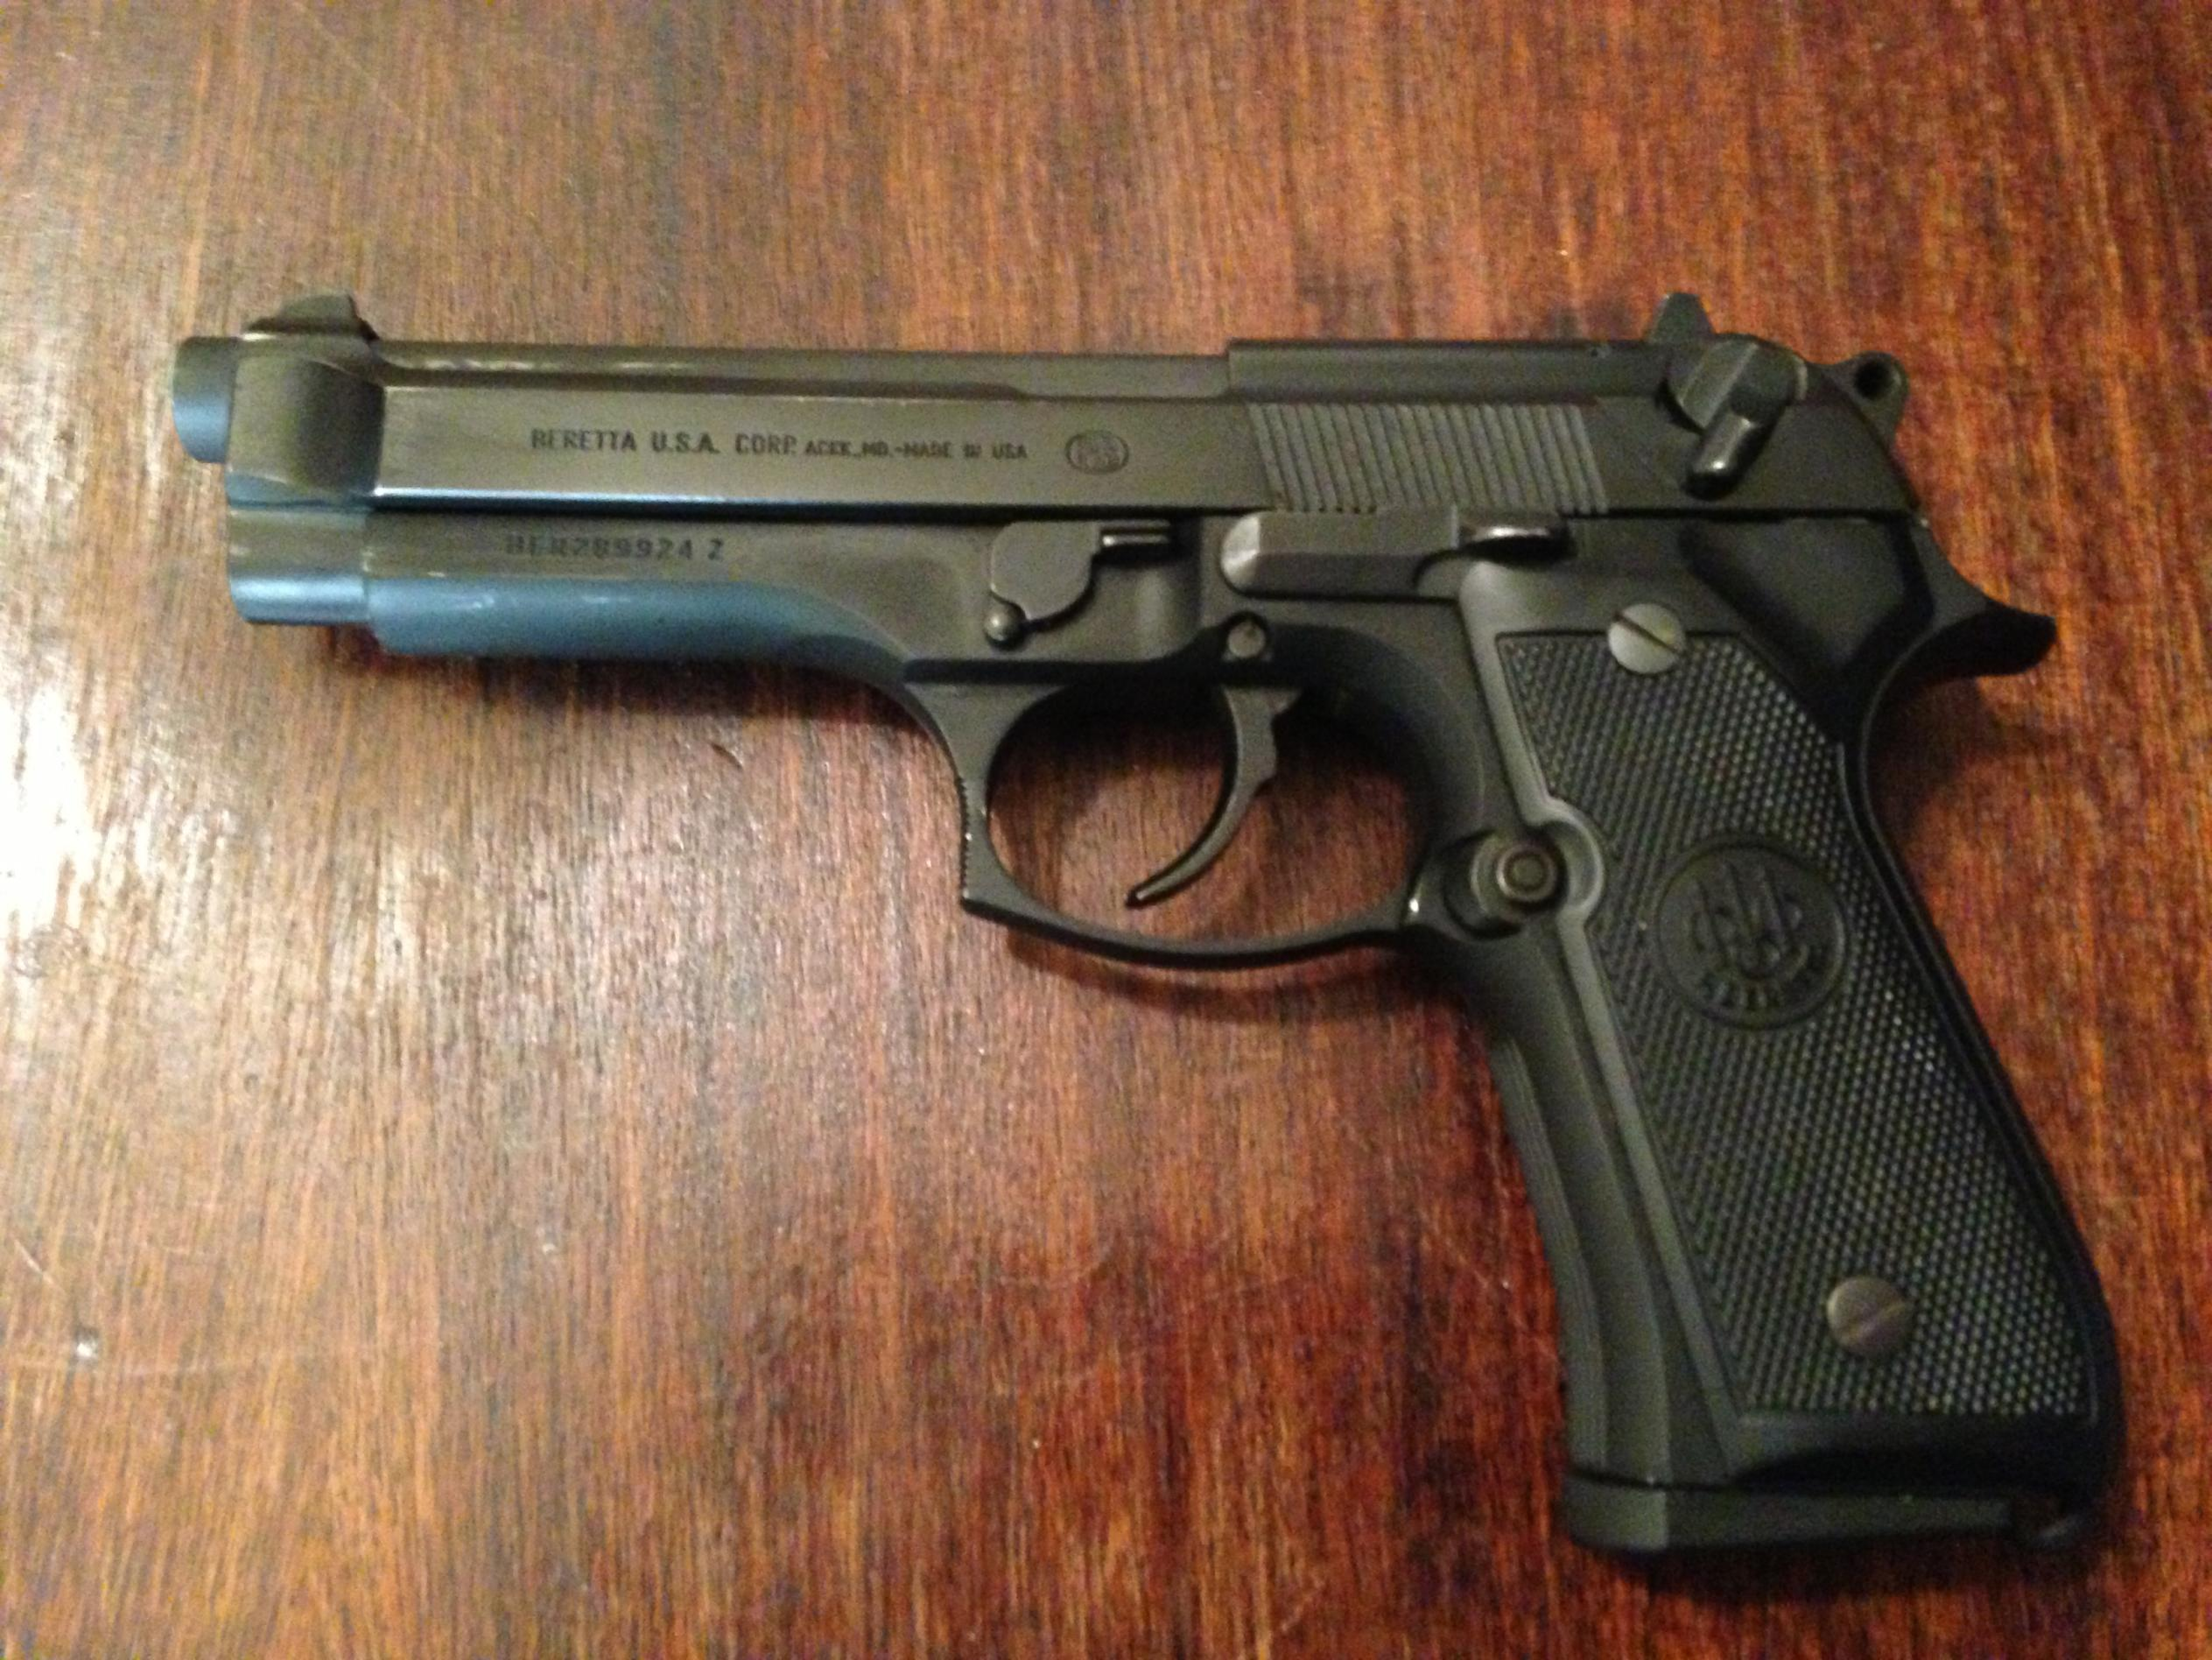 Tell me about the Beretta 92 FS-img_1772-1-.jpg